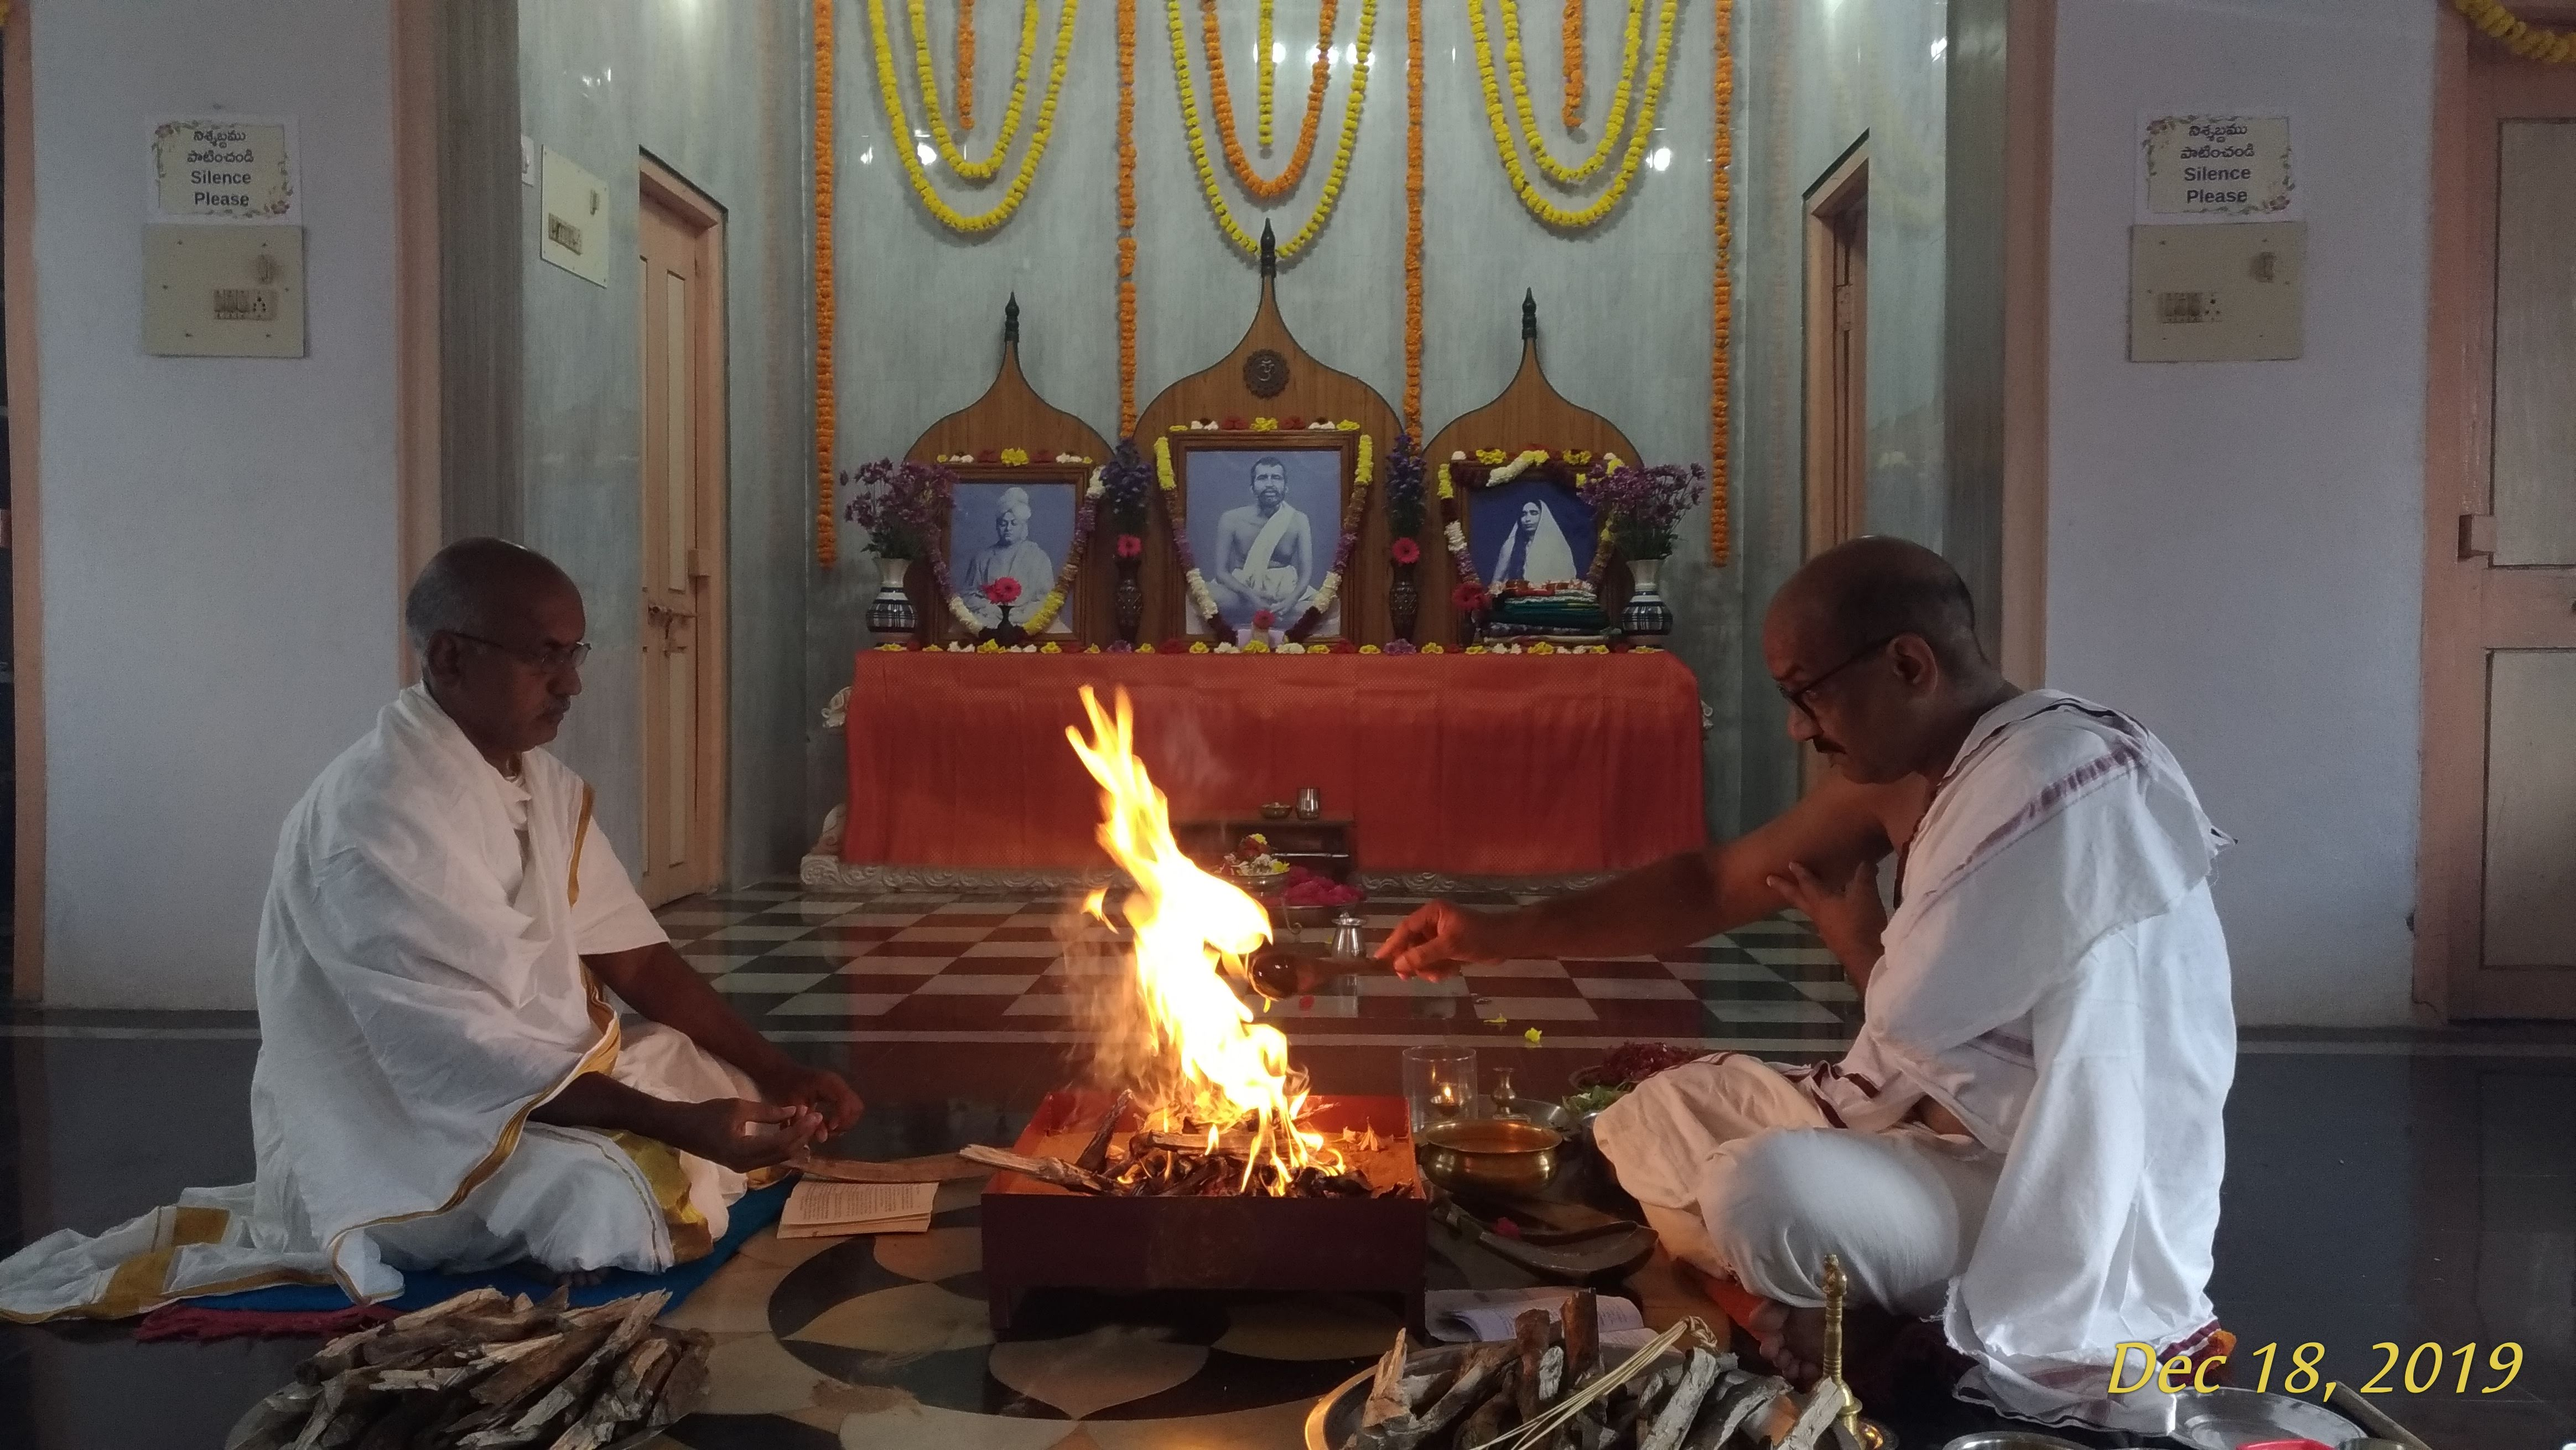 Morning Dashopachara Puja and Homa